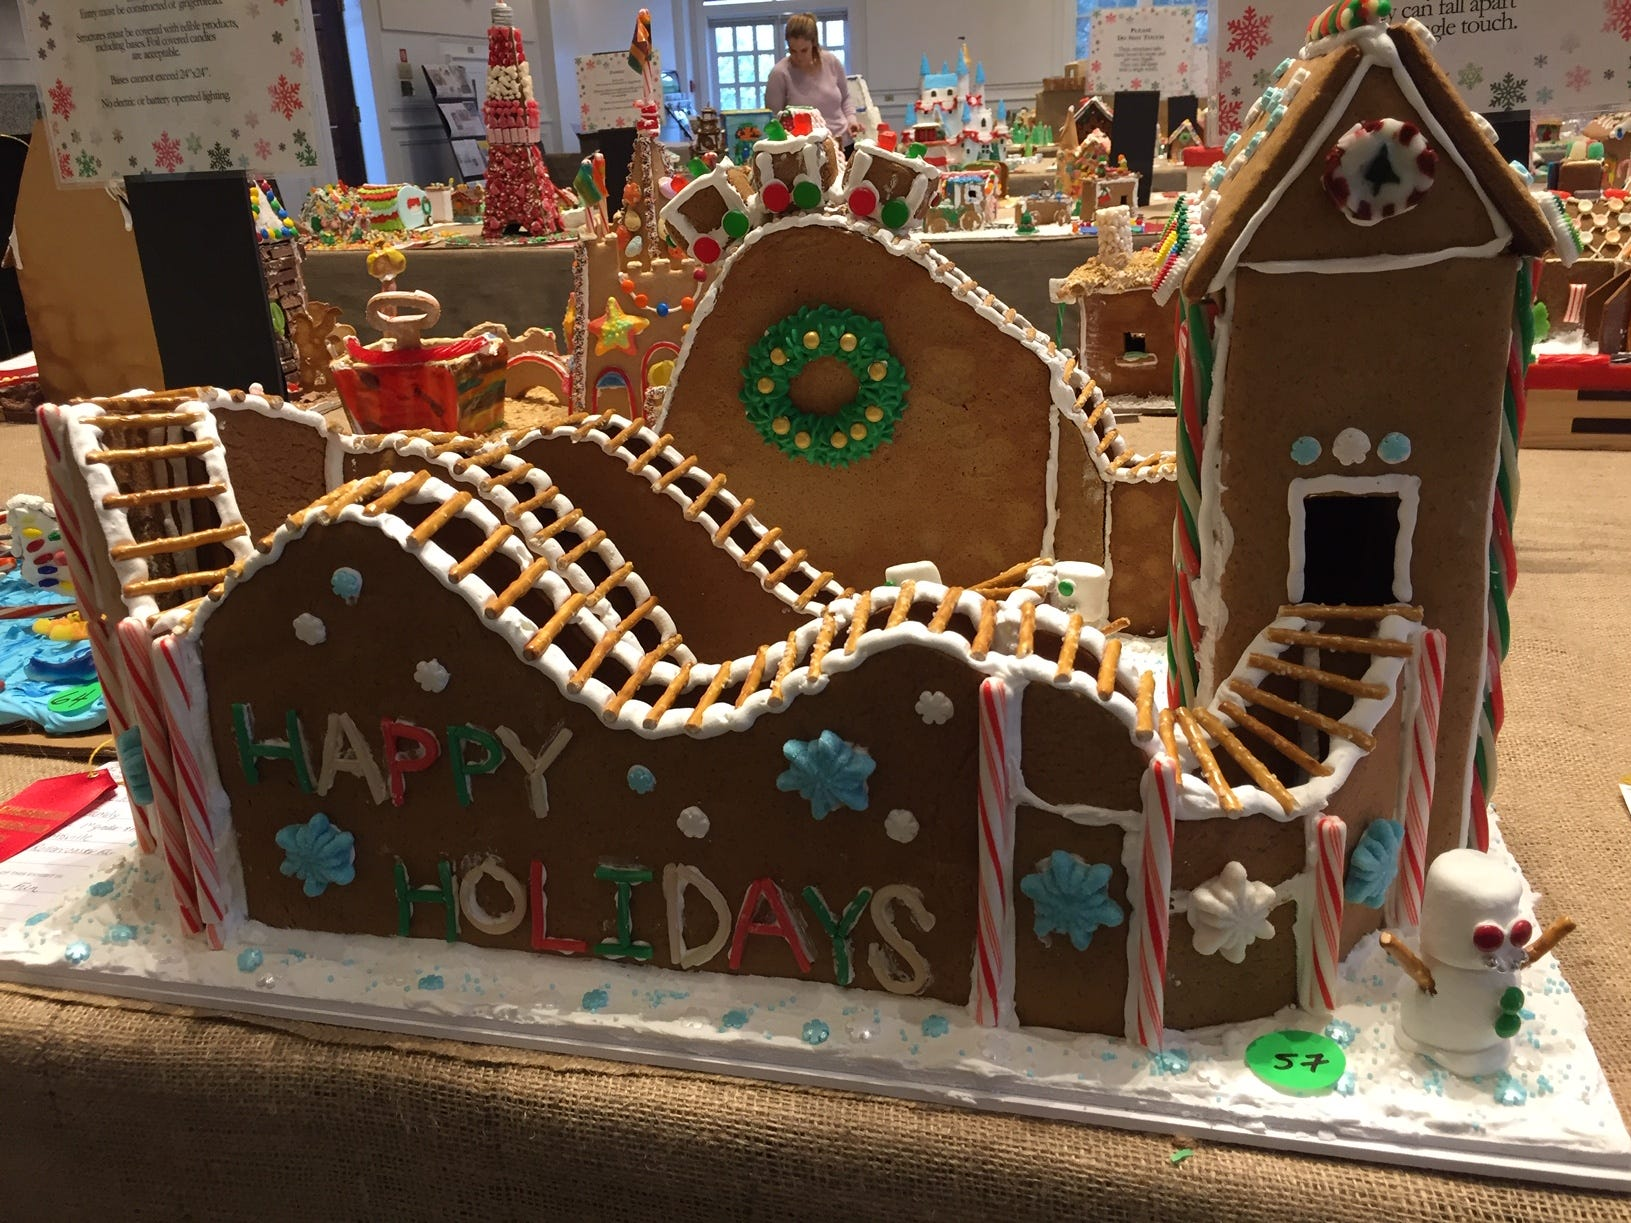 """Rollercoaster Fun"" by Ryan and Jen Koester of Martinsville at the 2018 Gingerbread Wonderland at the Frelnghuysen Arboretum. Family category."